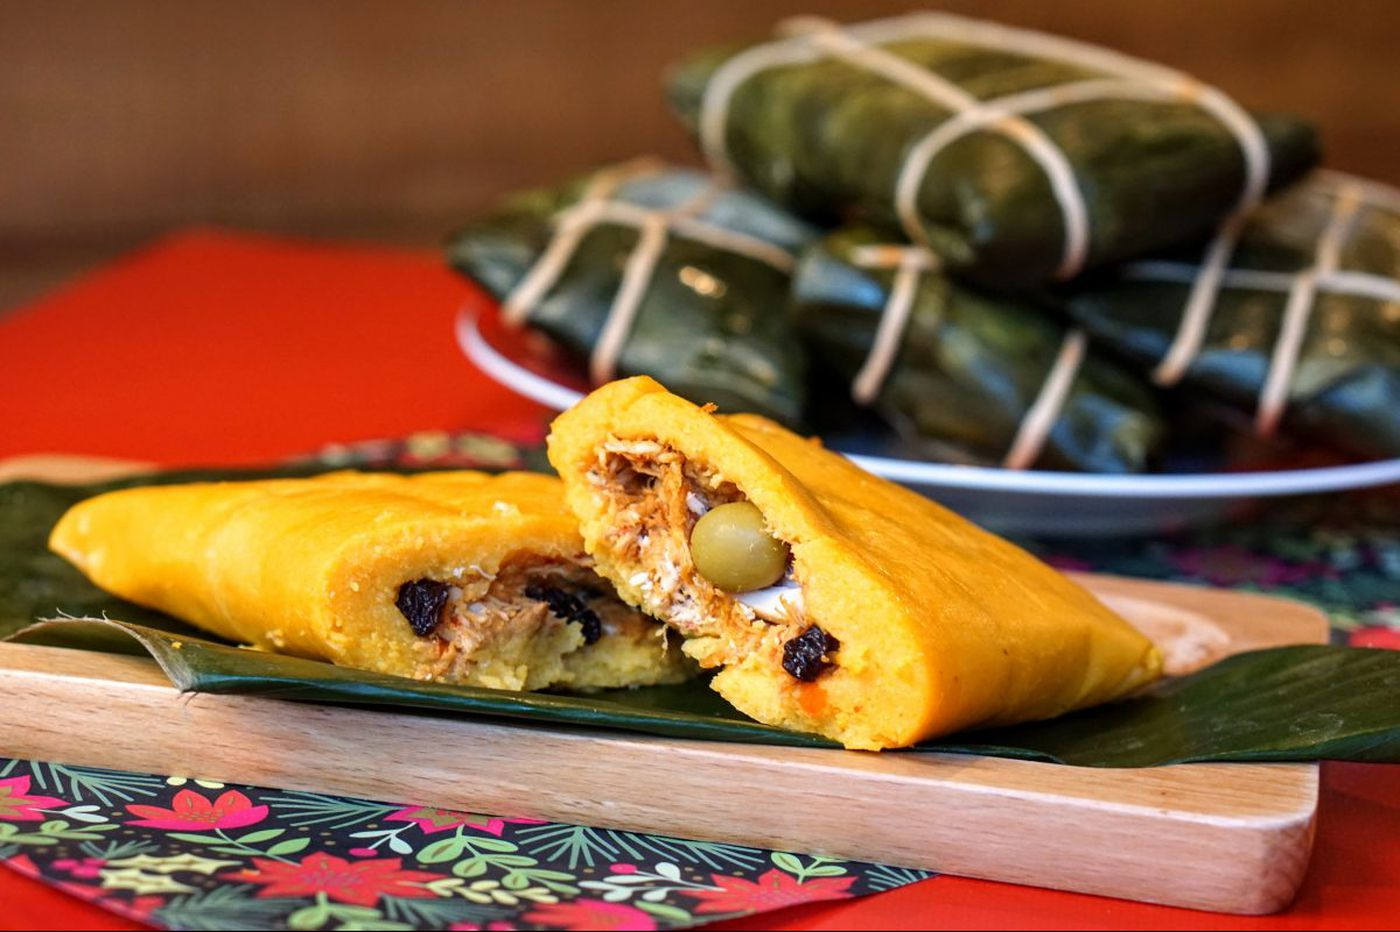 Like tamales? Try hallacas, a Christmas tradition in Venezuela